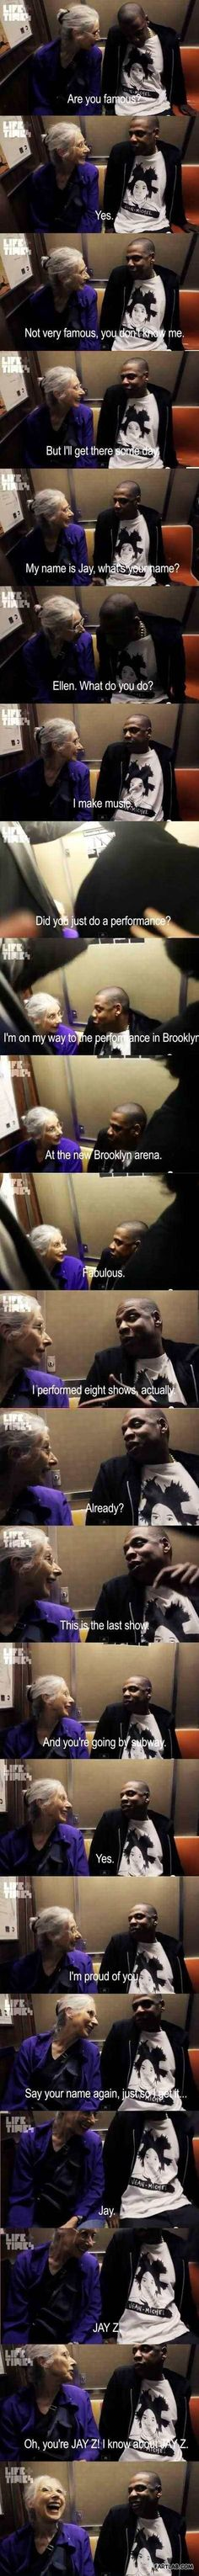 Jay Z being awesome